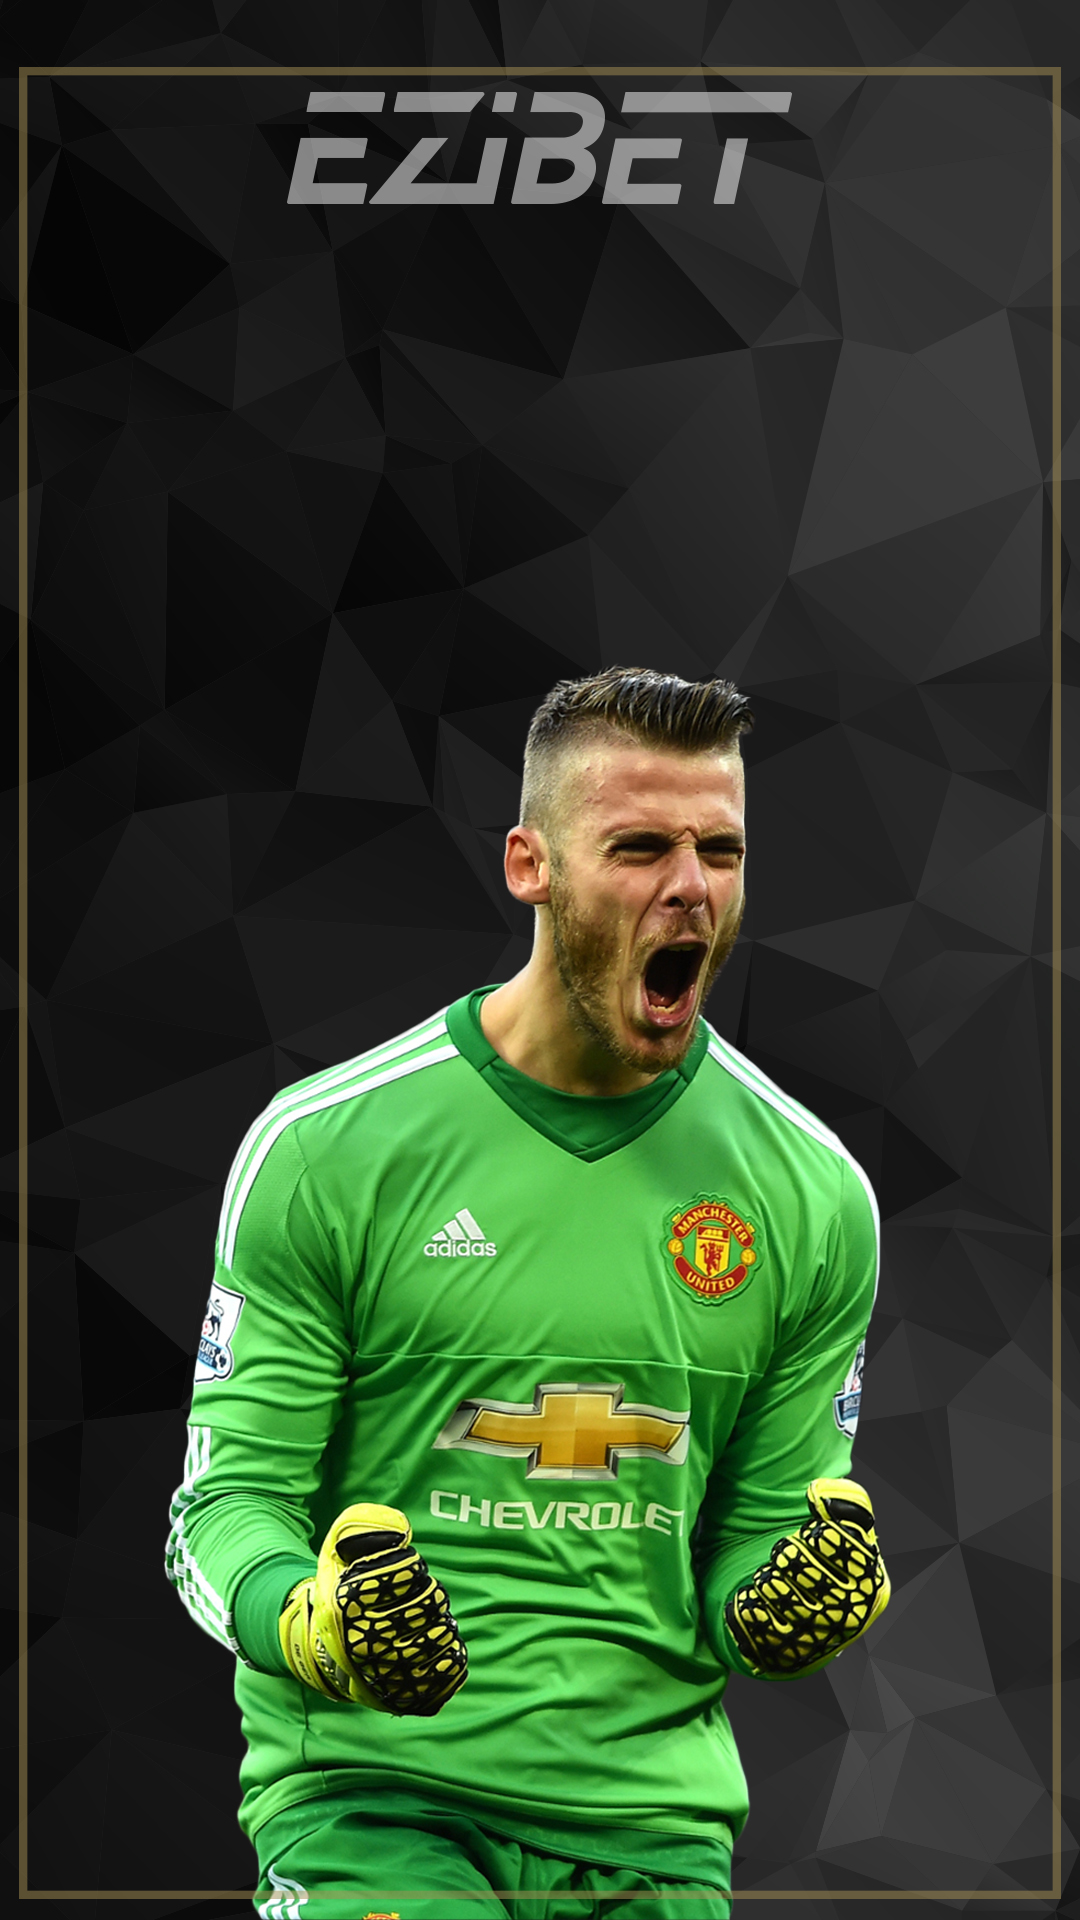 De Gea Mobile wallpaper.jpg